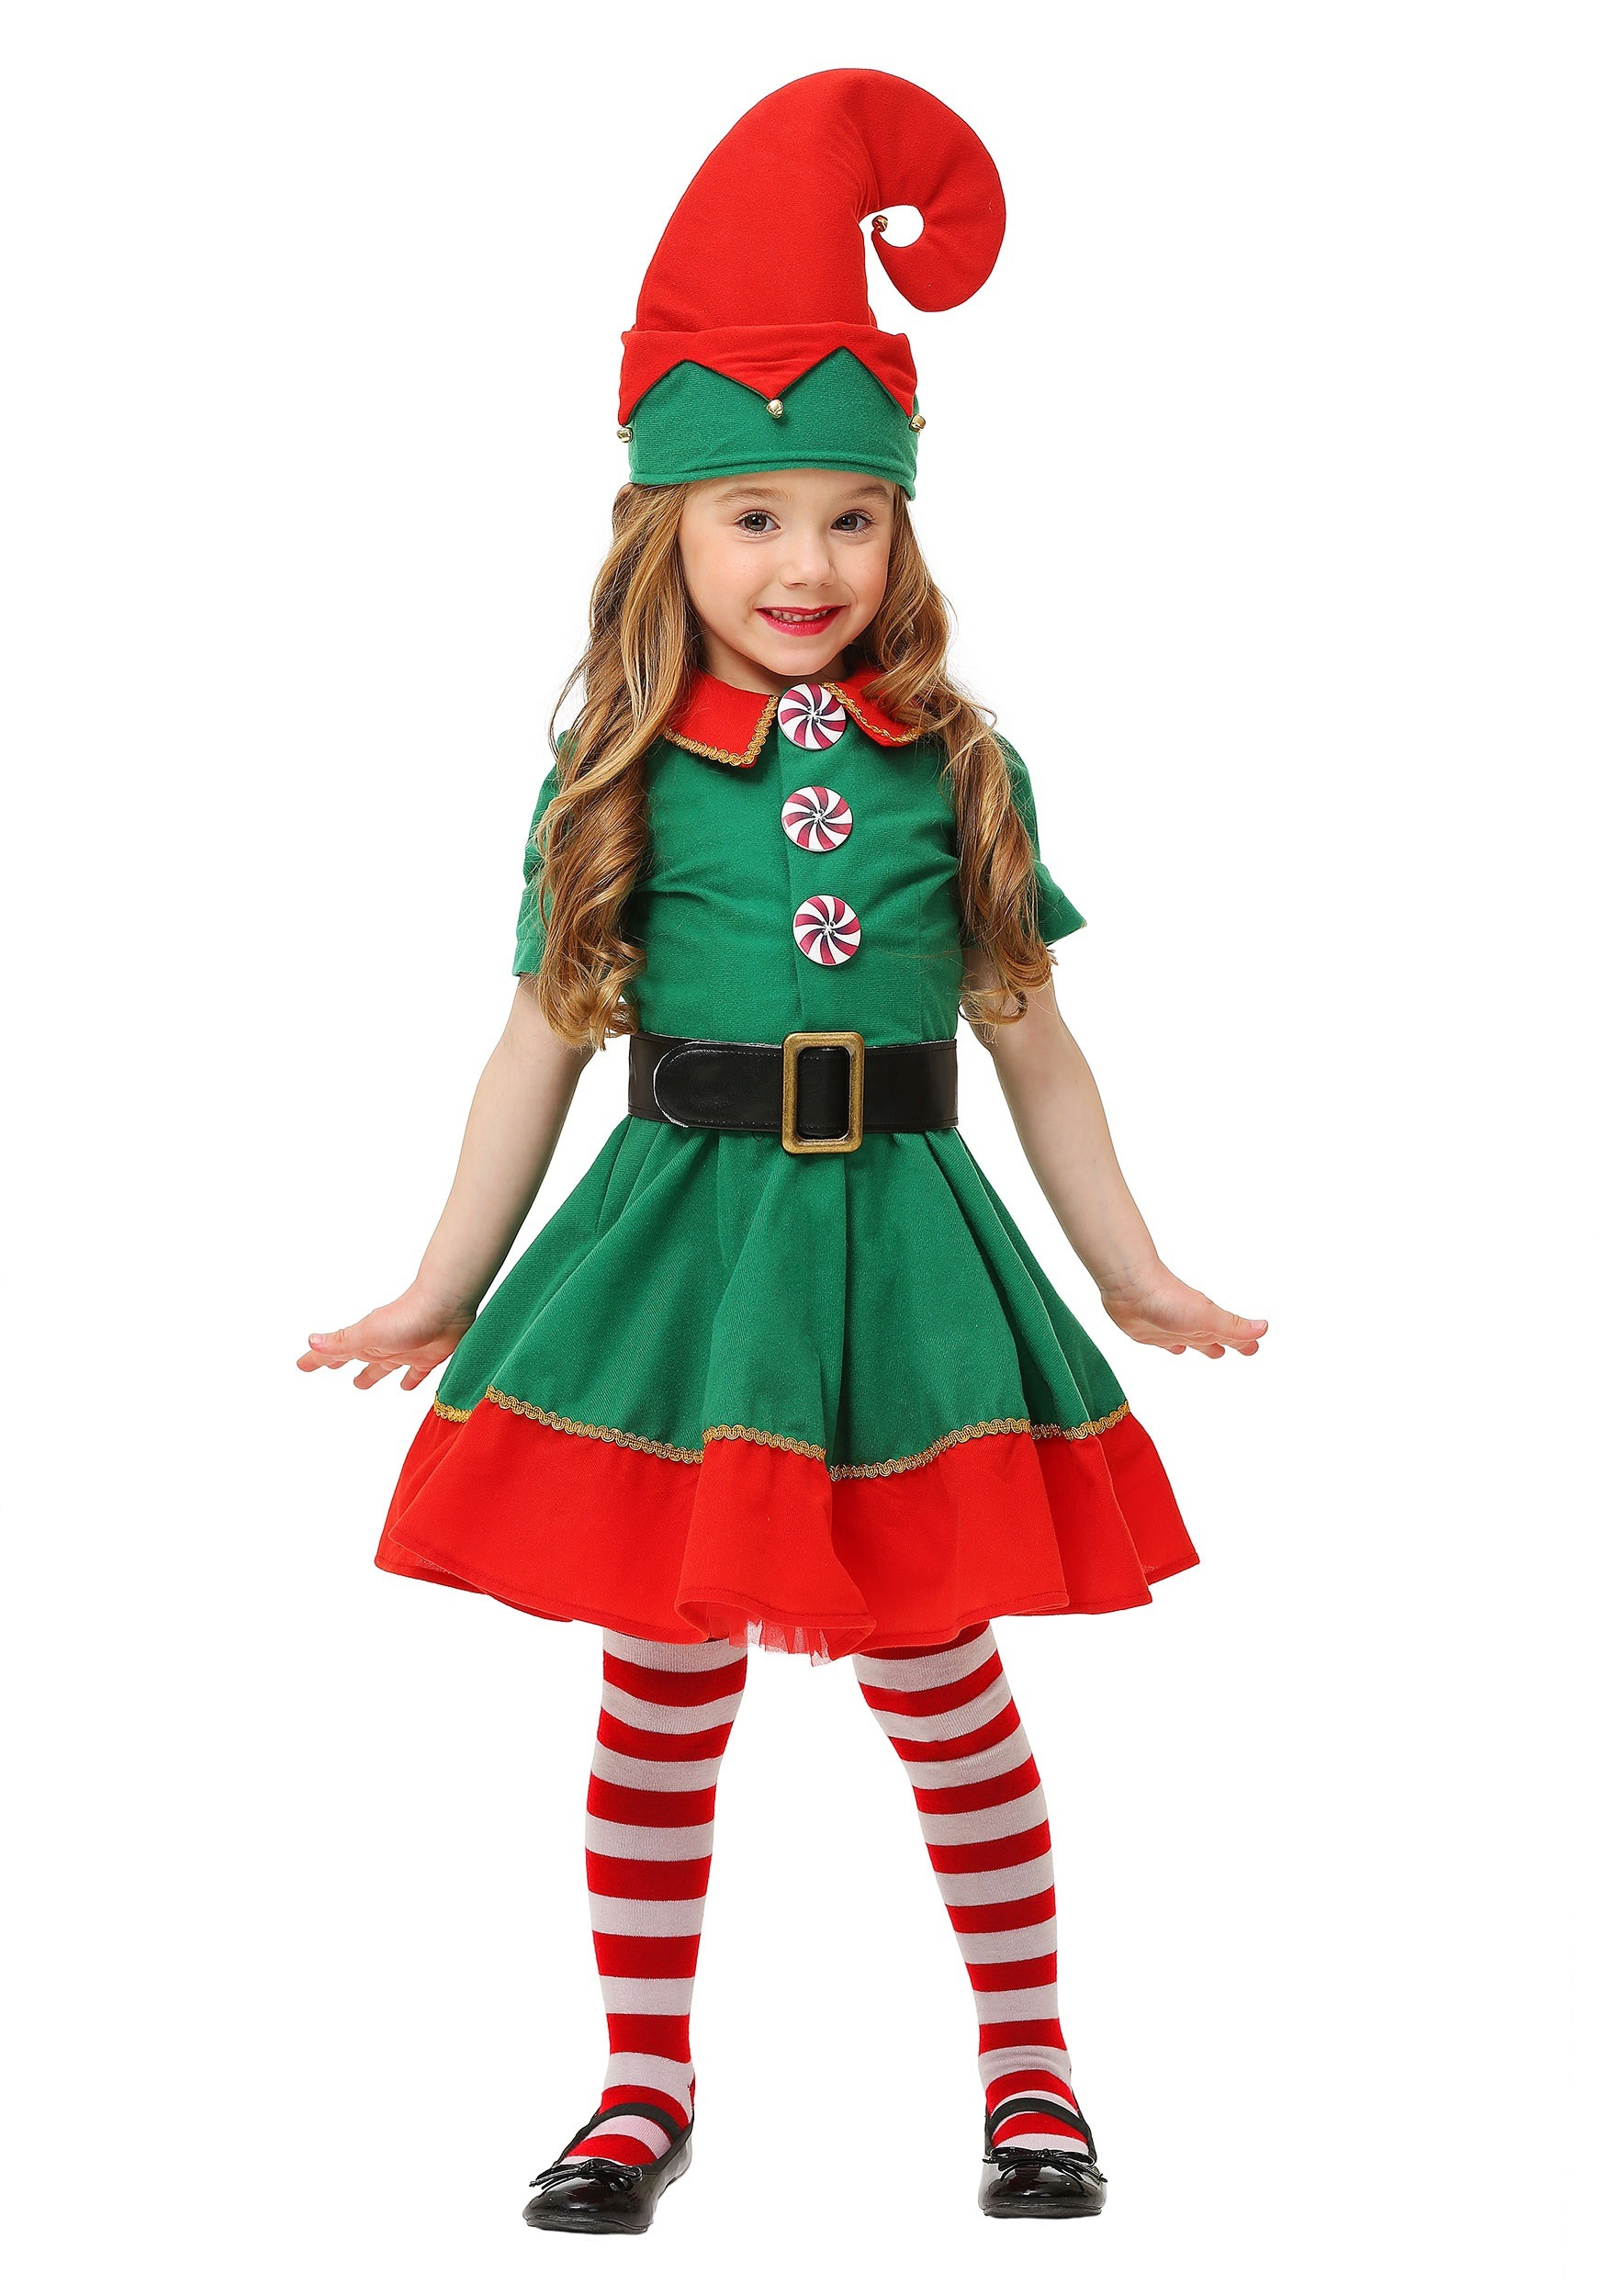 69eb4145a toddler-holiday-elf-costume.jpg